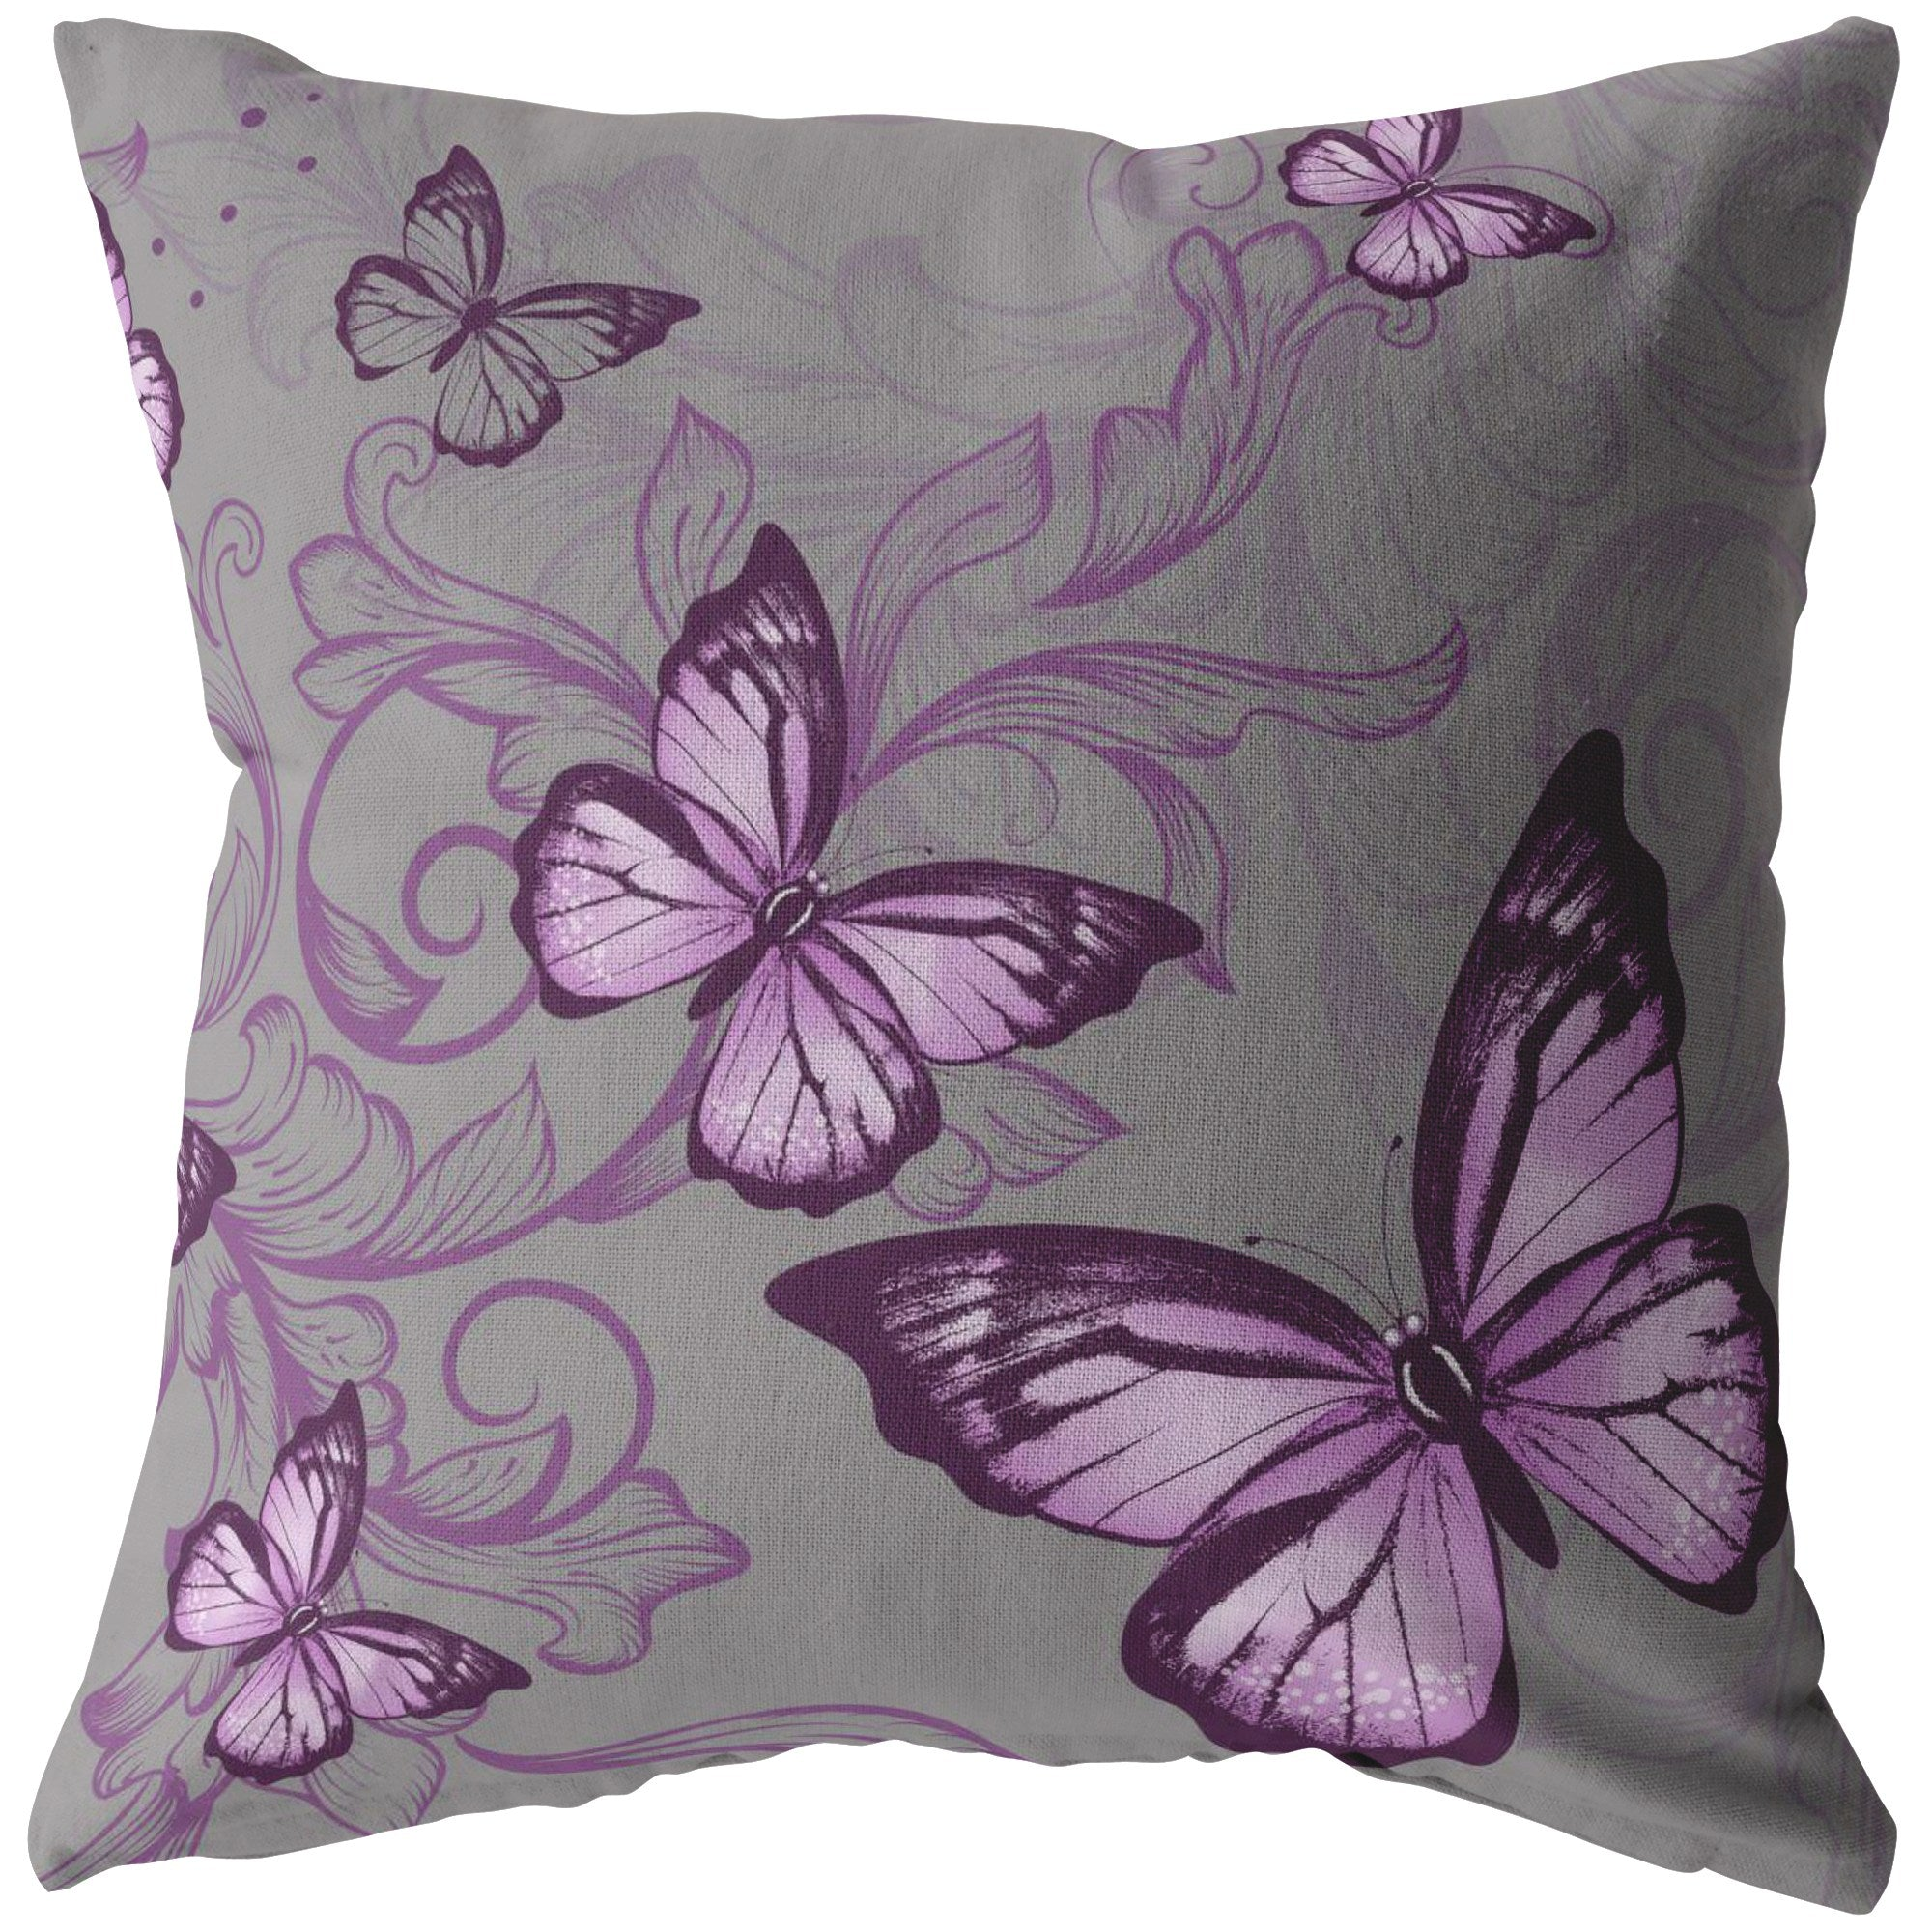 Purple Butterfly Pillow In Dark Grey - The Unchargeables